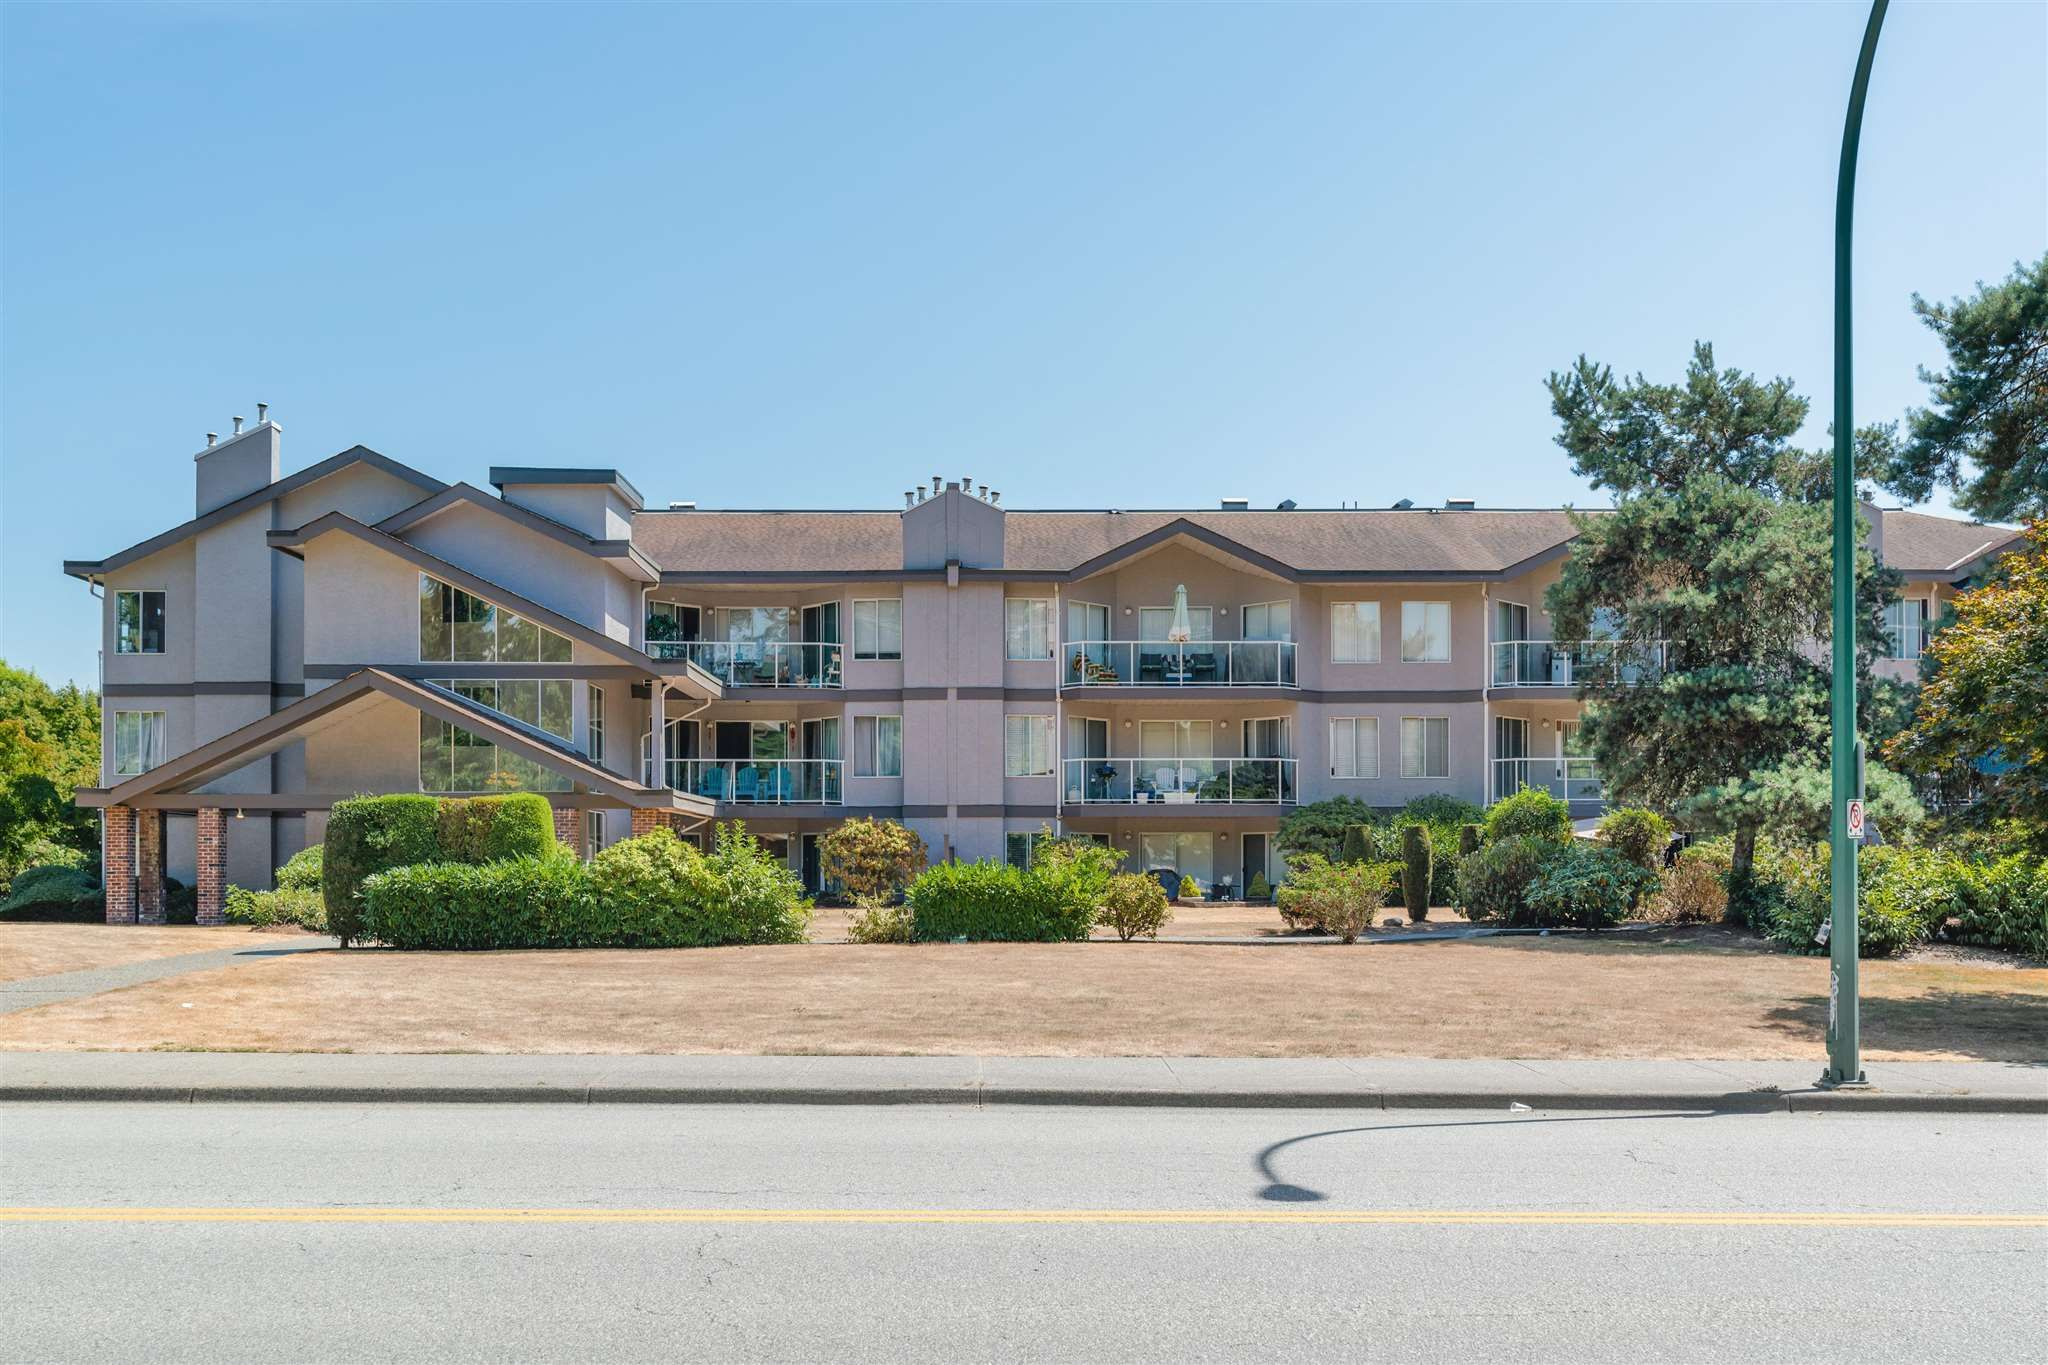 Photo 23: Photos: 303 1171 PIPELINE Road in Coquitlam: New Horizons Condo for sale : MLS®# R2607932